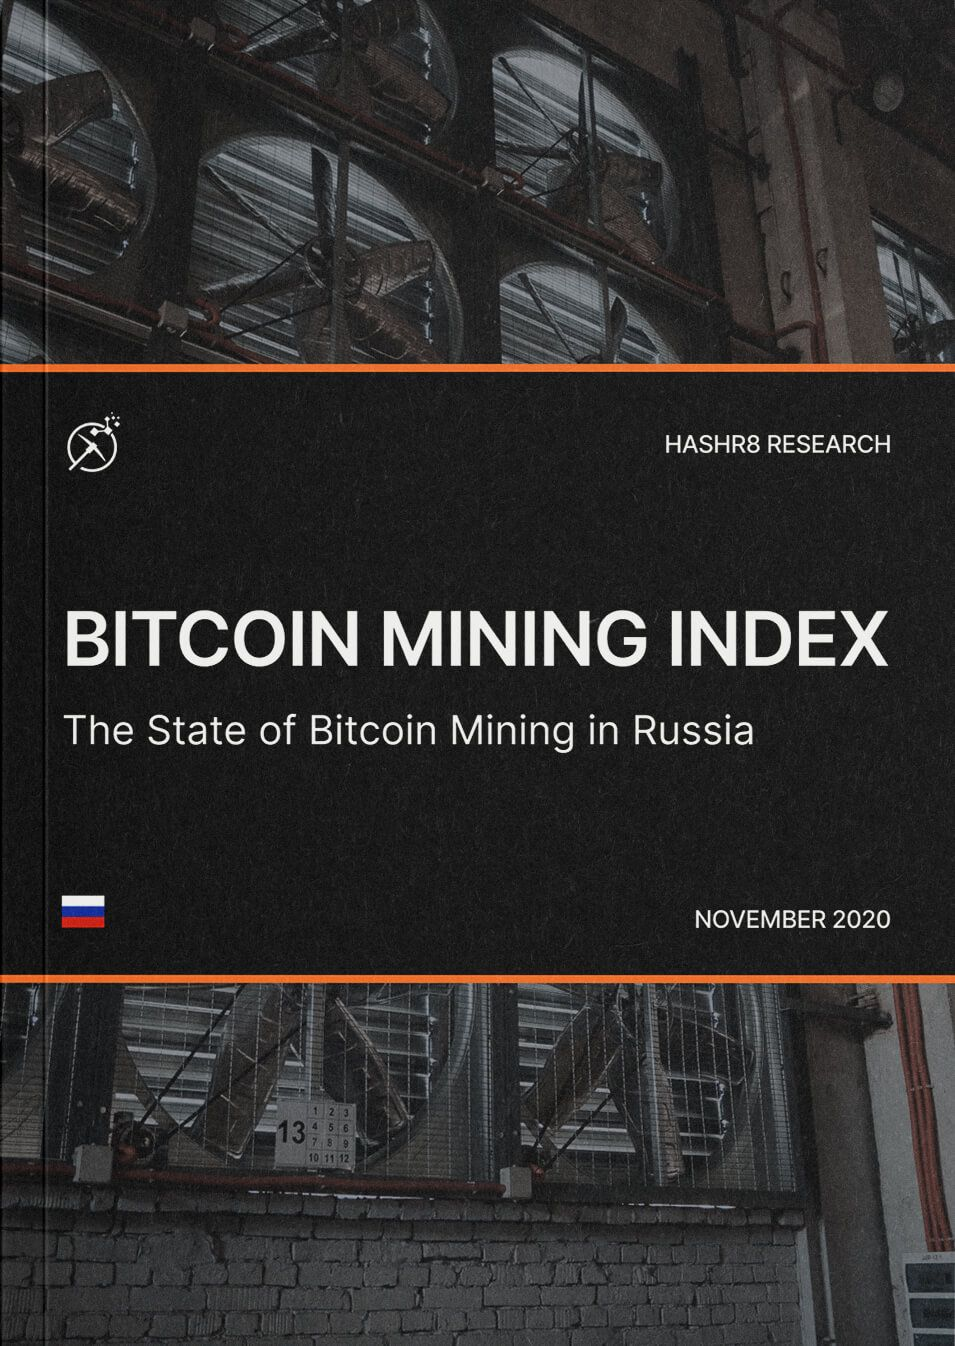 The State of Bitcoin Mining in Russia